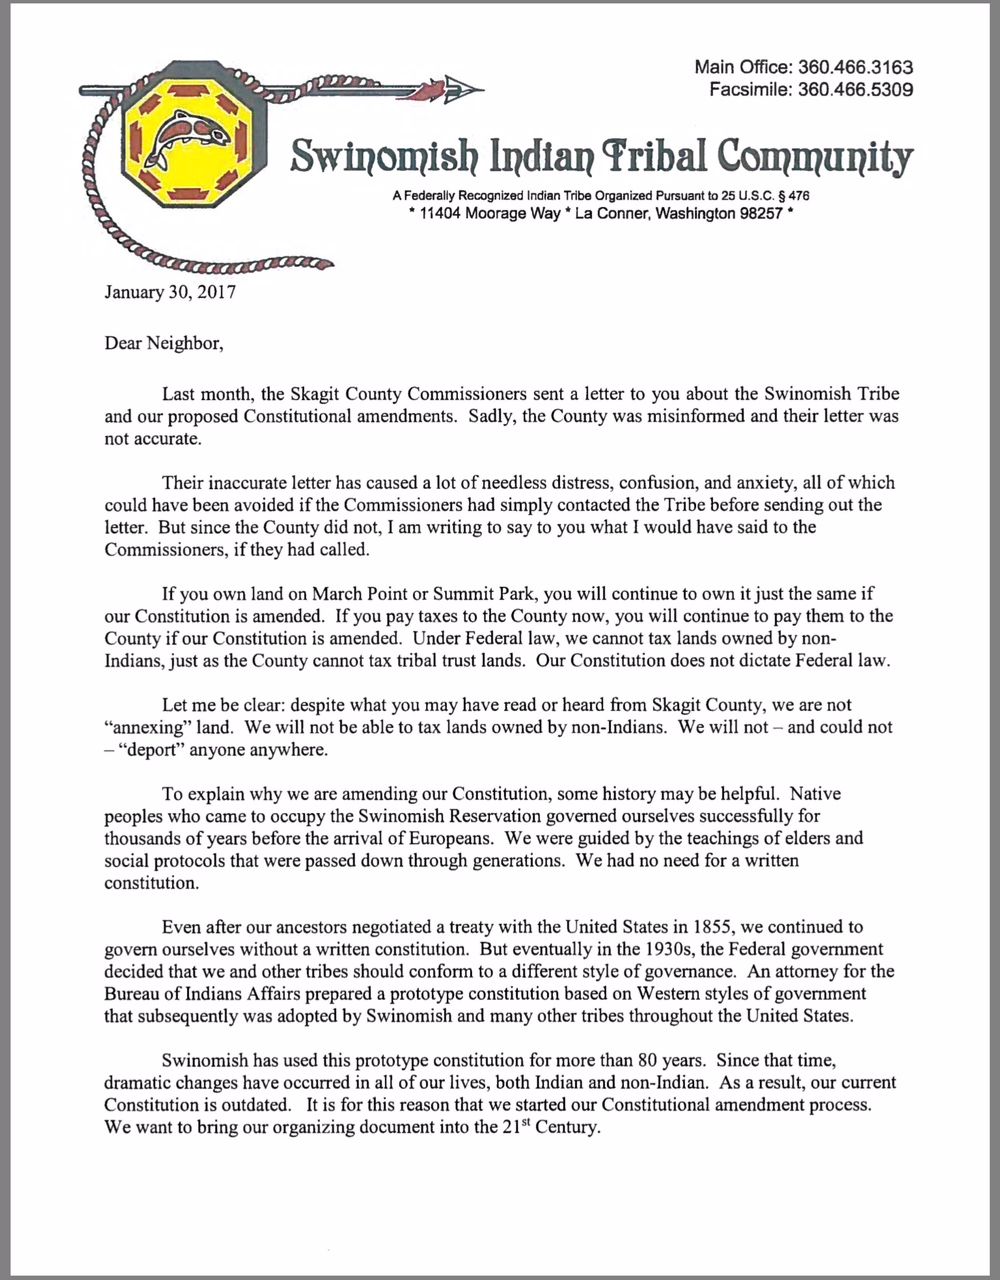 Skagit officials stoke resentment of Swinomish pursuits of